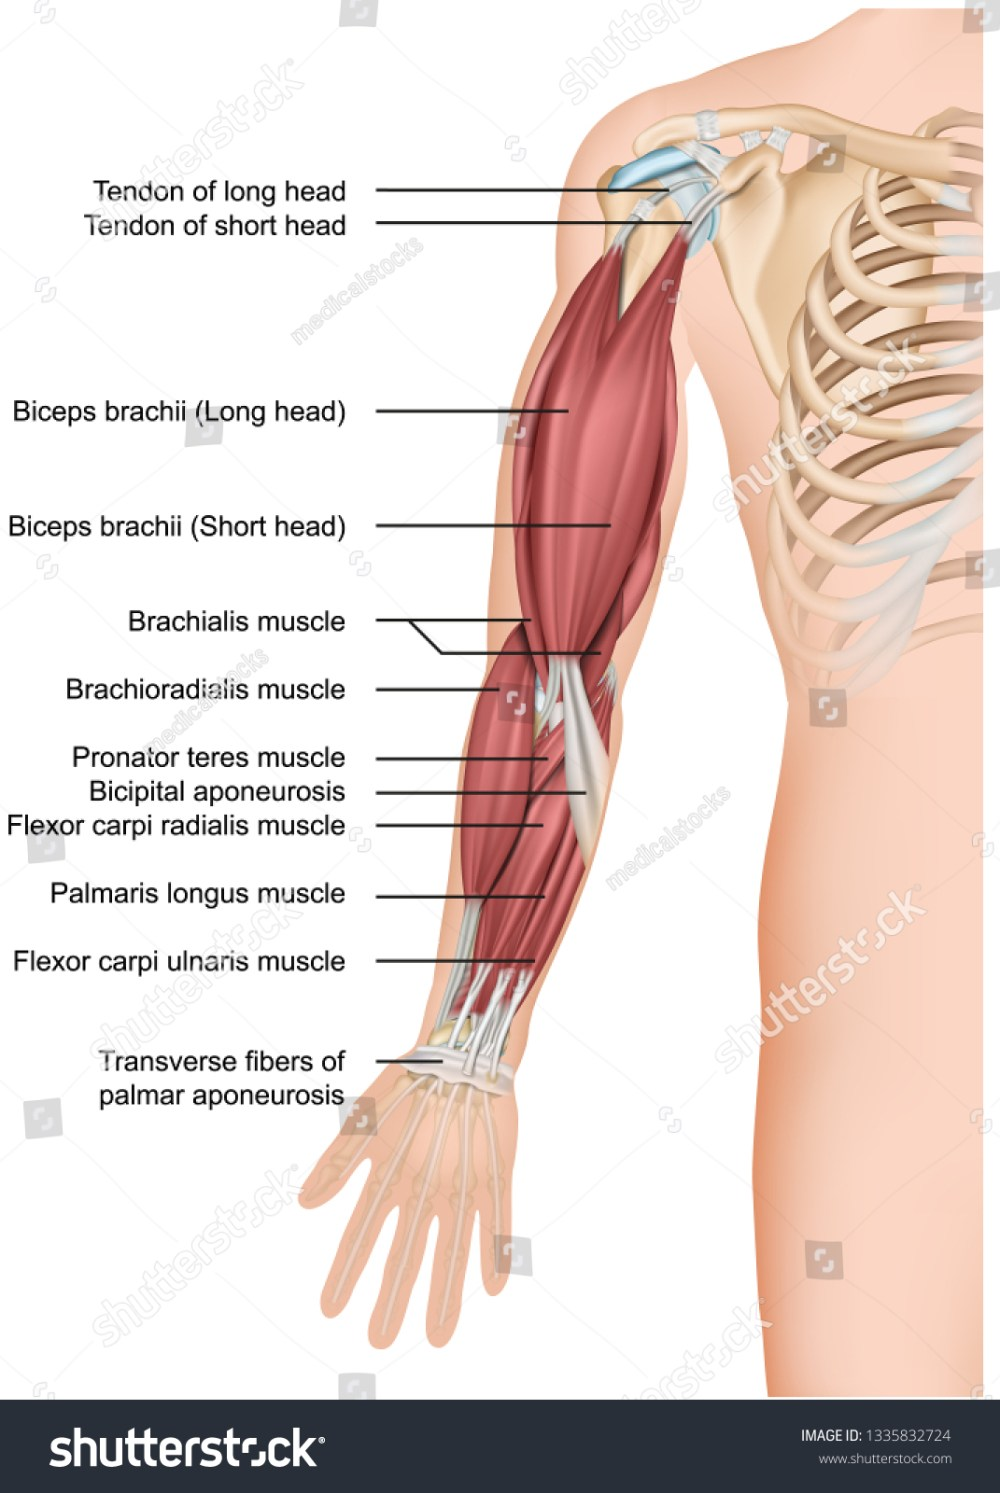 medium resolution of arm muscle anatomy 3d medical vector illustration forearm